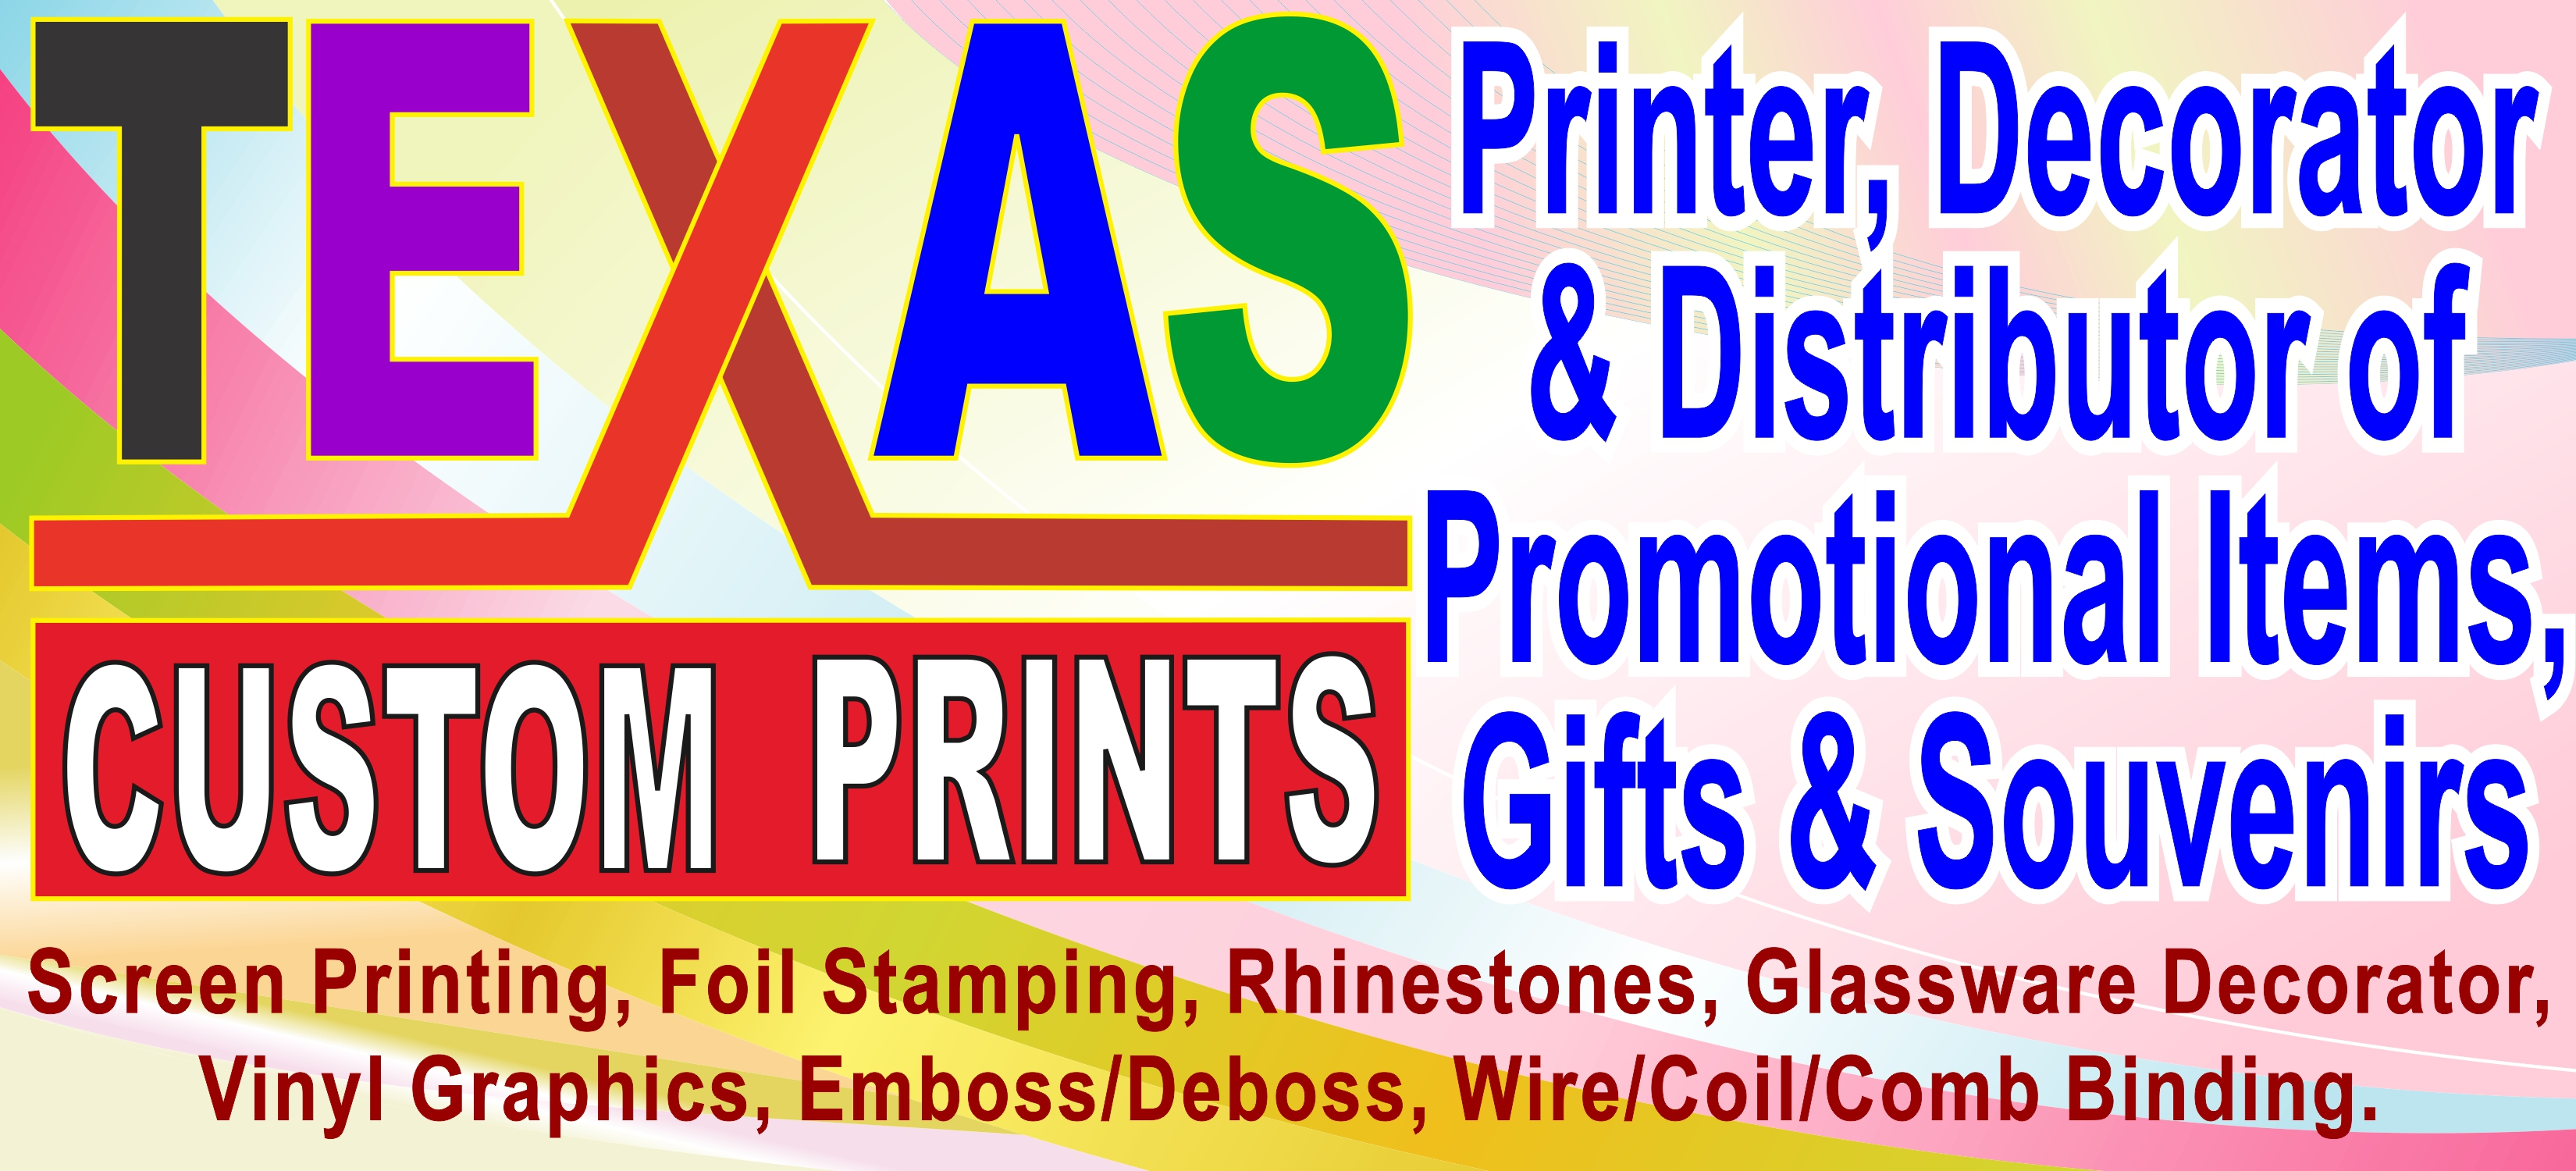 Texas Custom Prints Logo